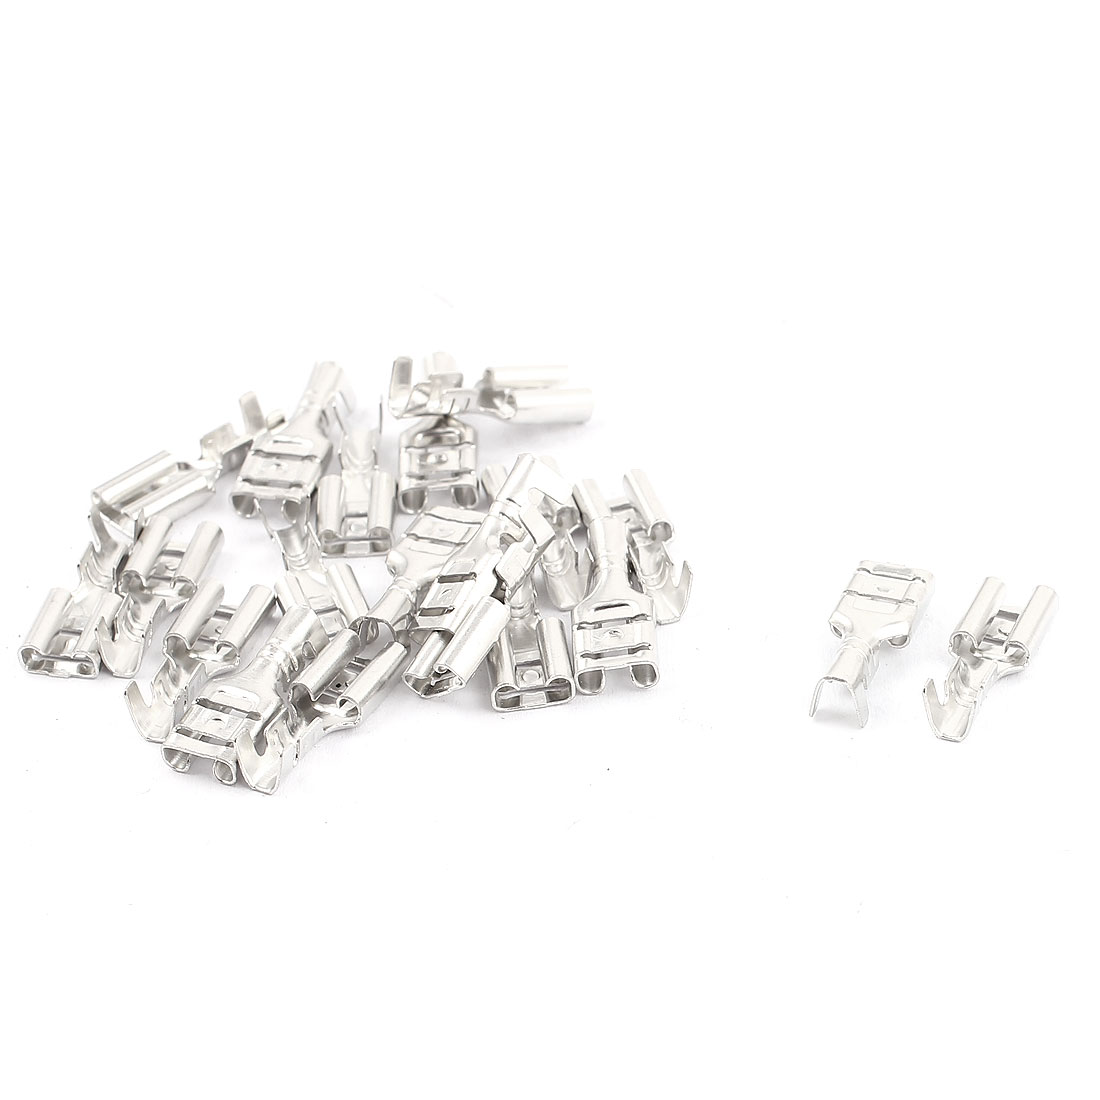 20PCS Electronic Components Non-Insulated Spade Female Terminals Connector